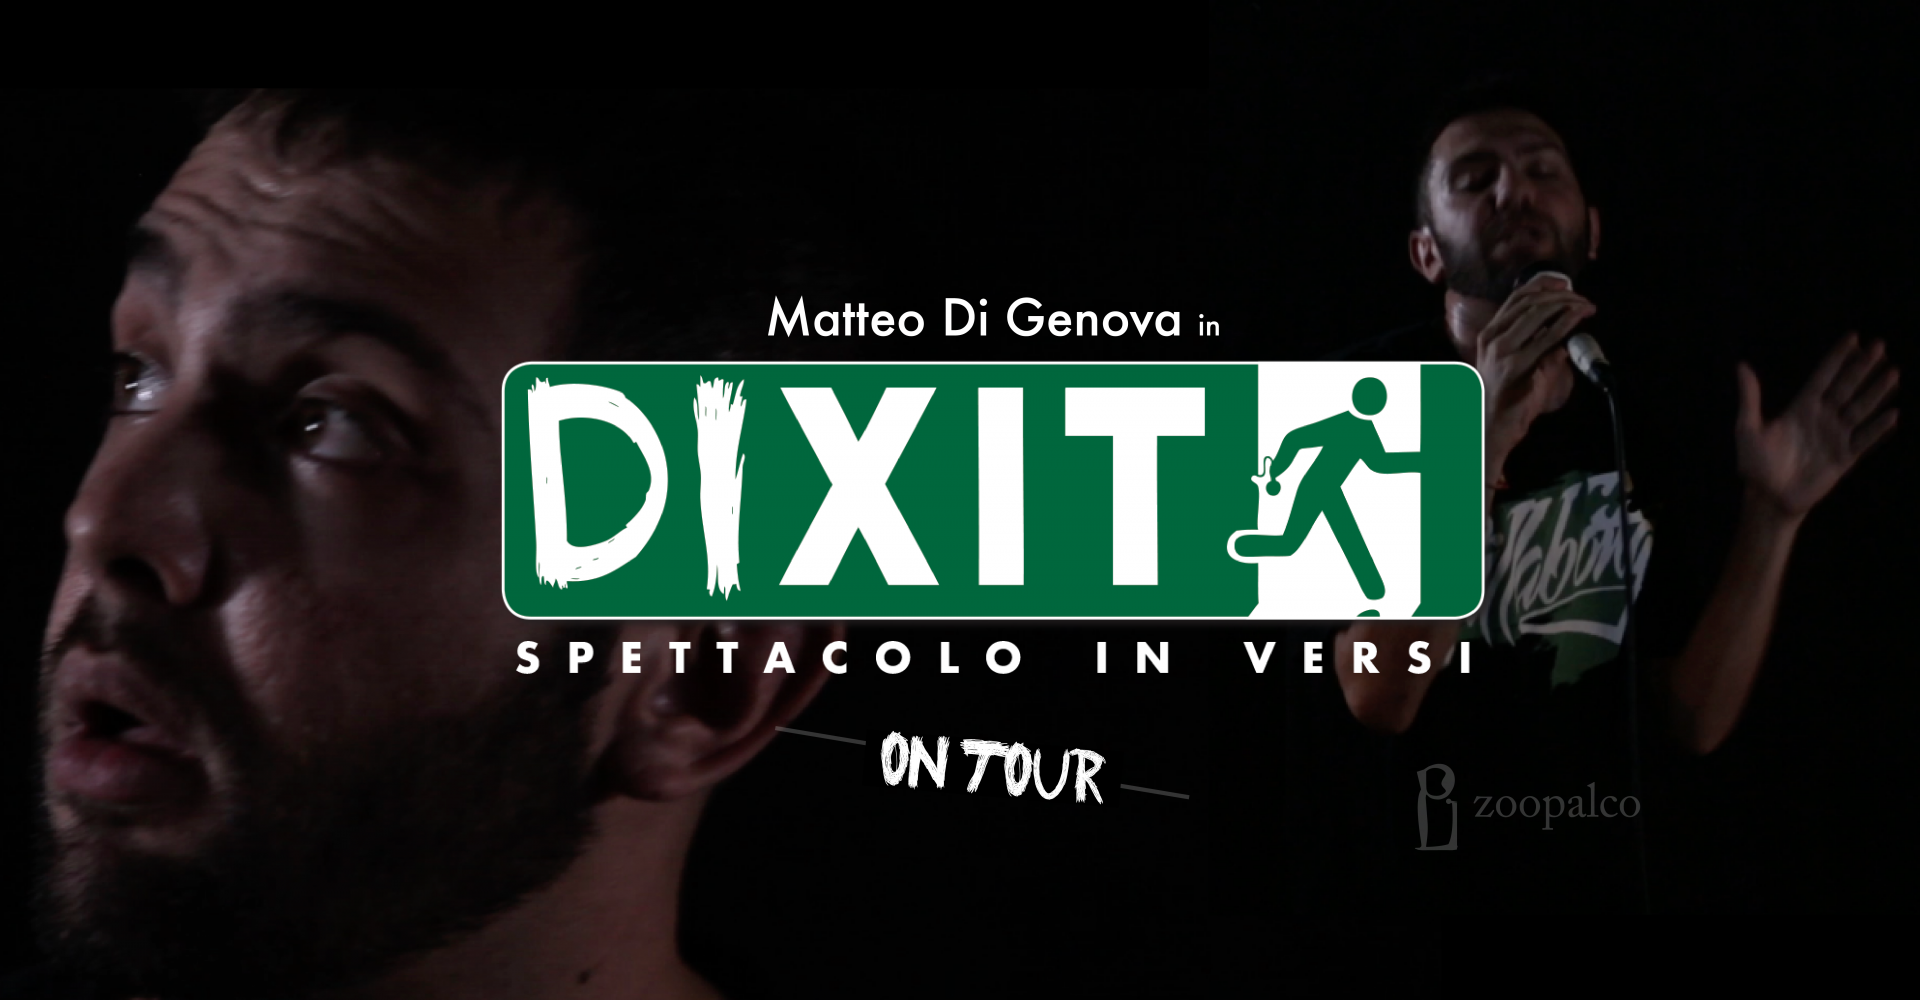 DIXIT - COVER x eventi 1920X1080 - FB